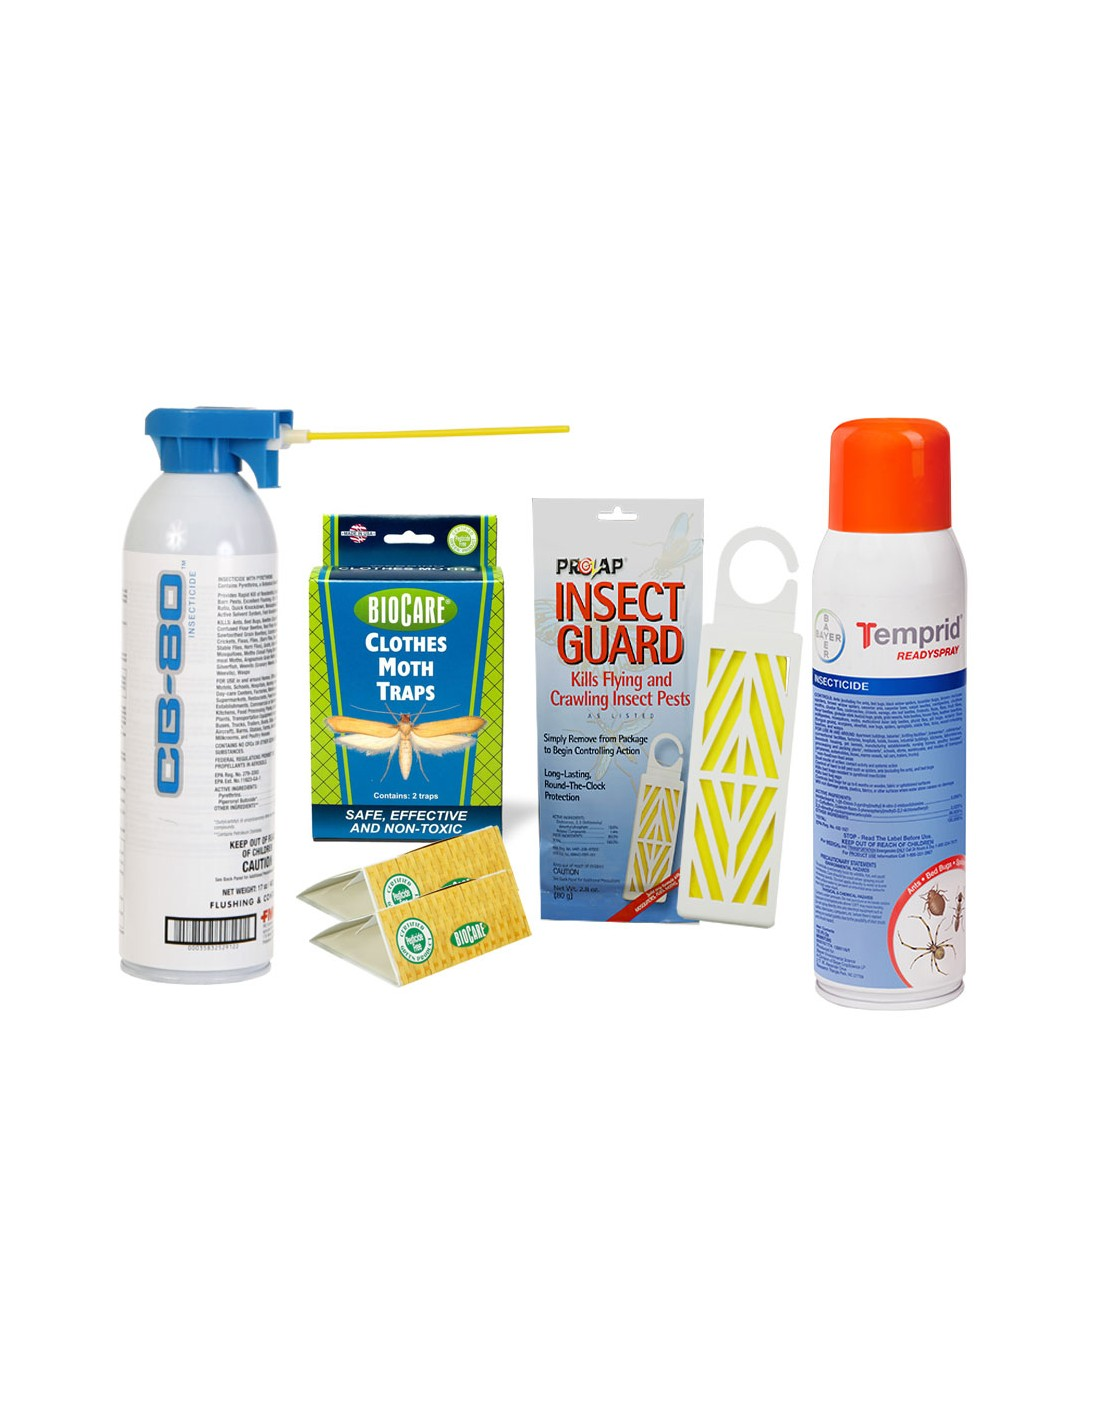 Clothes Moth and Carpet Beetle Kit